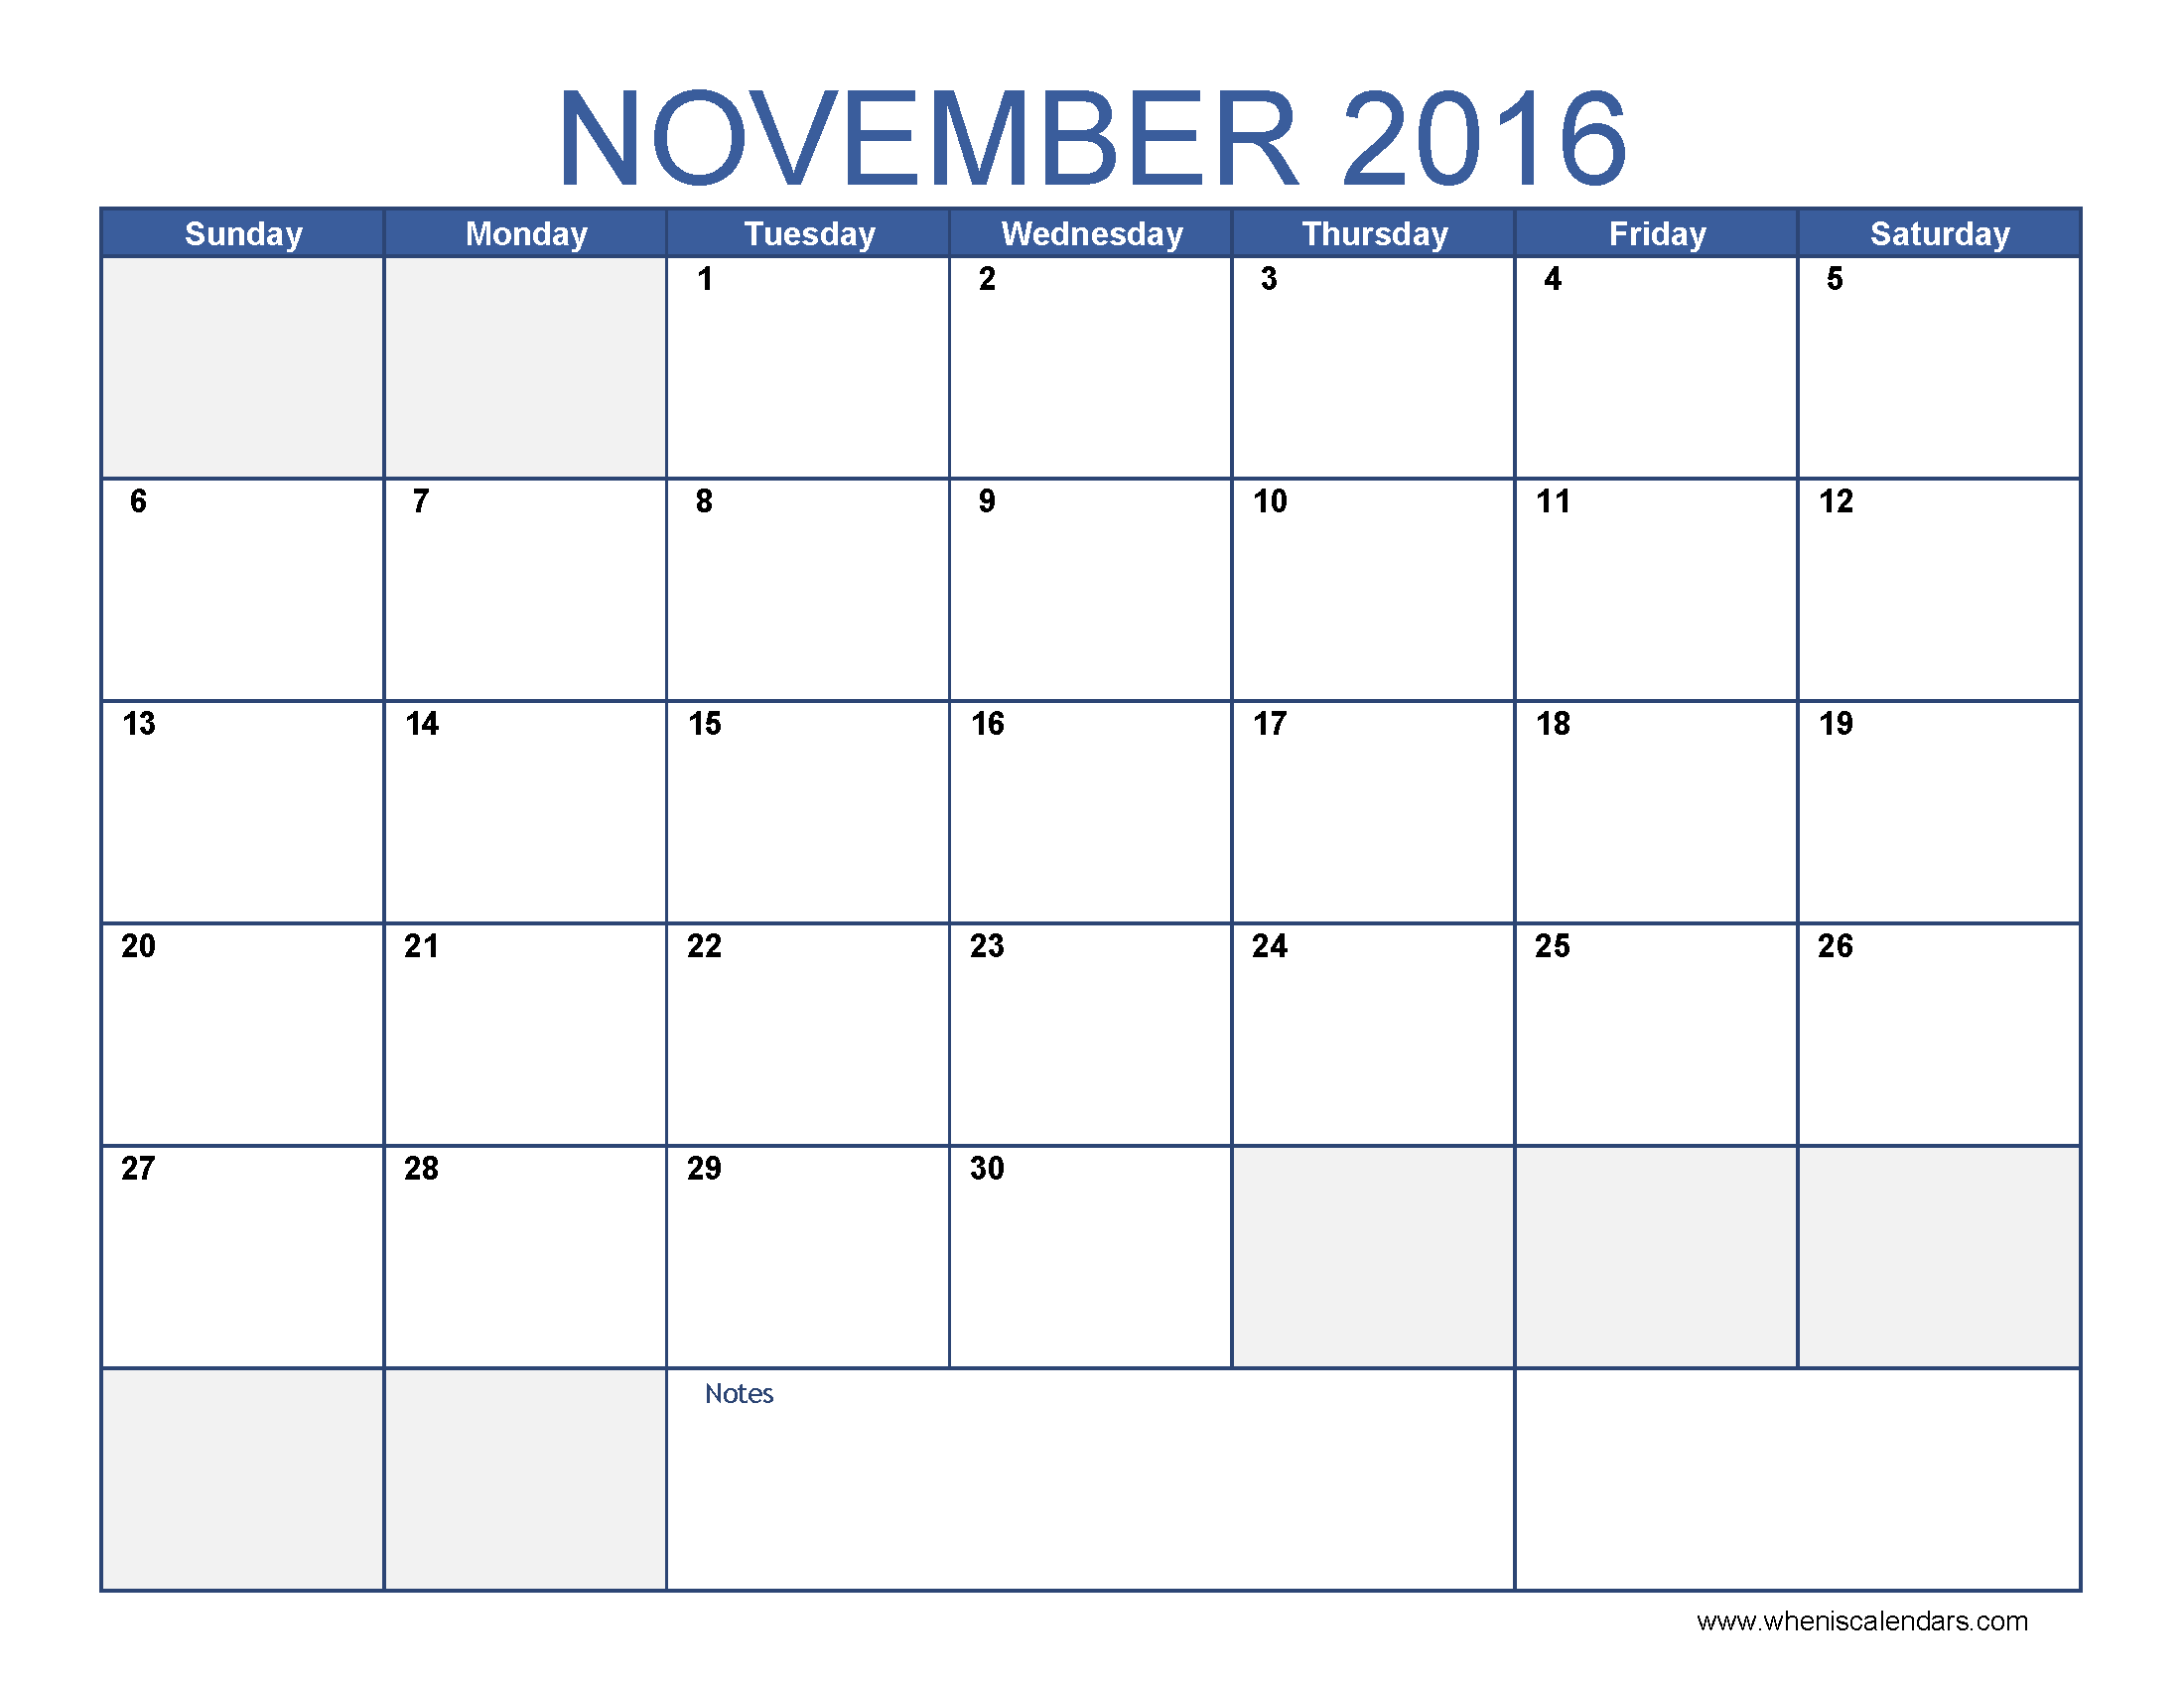 November 2016 Calendar Excel | monthly calendar printable